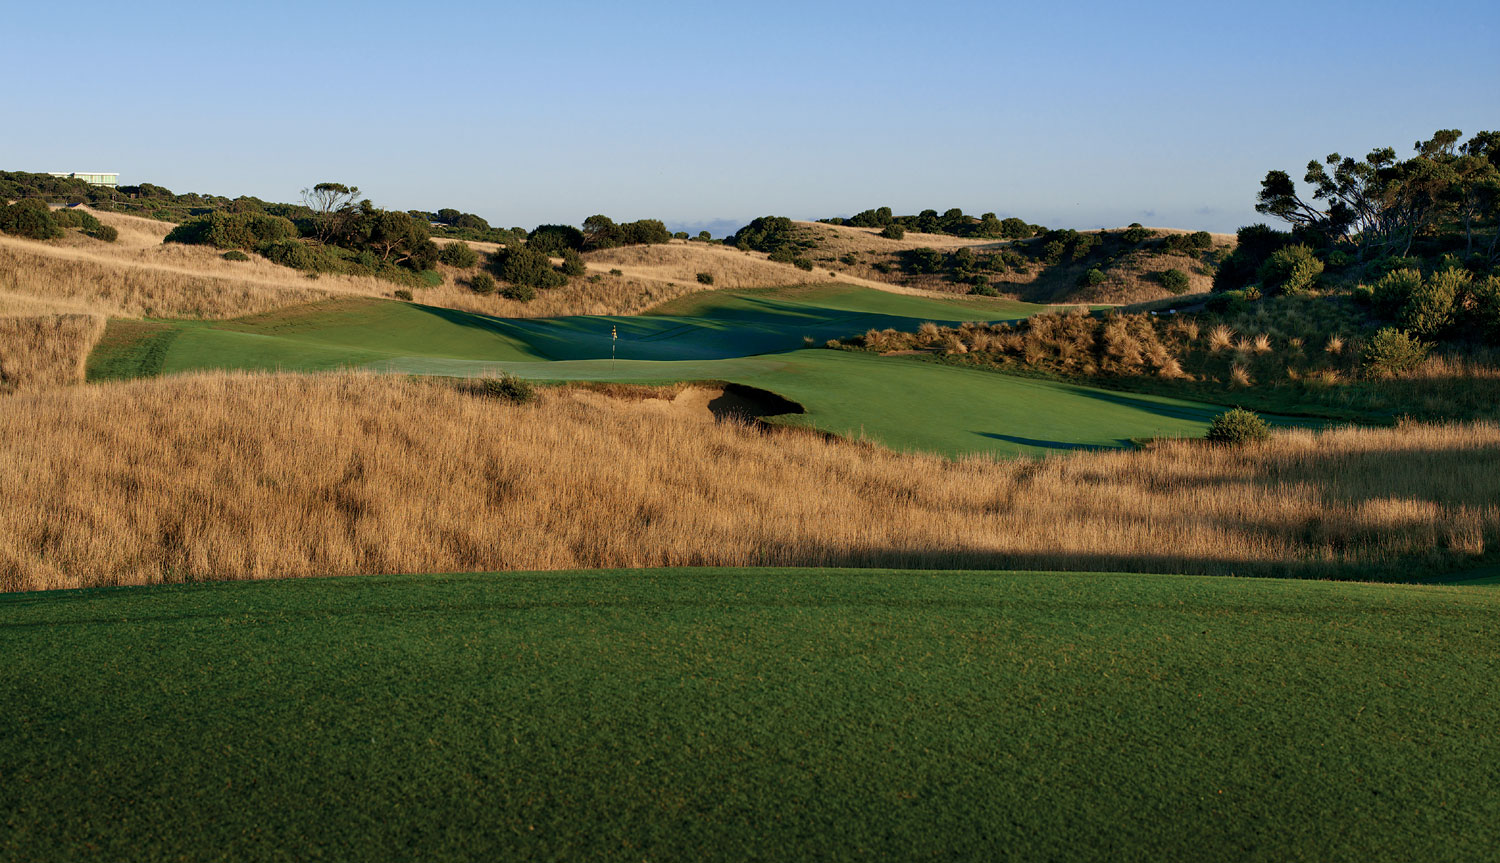 st_andrews_golf_course_17_g